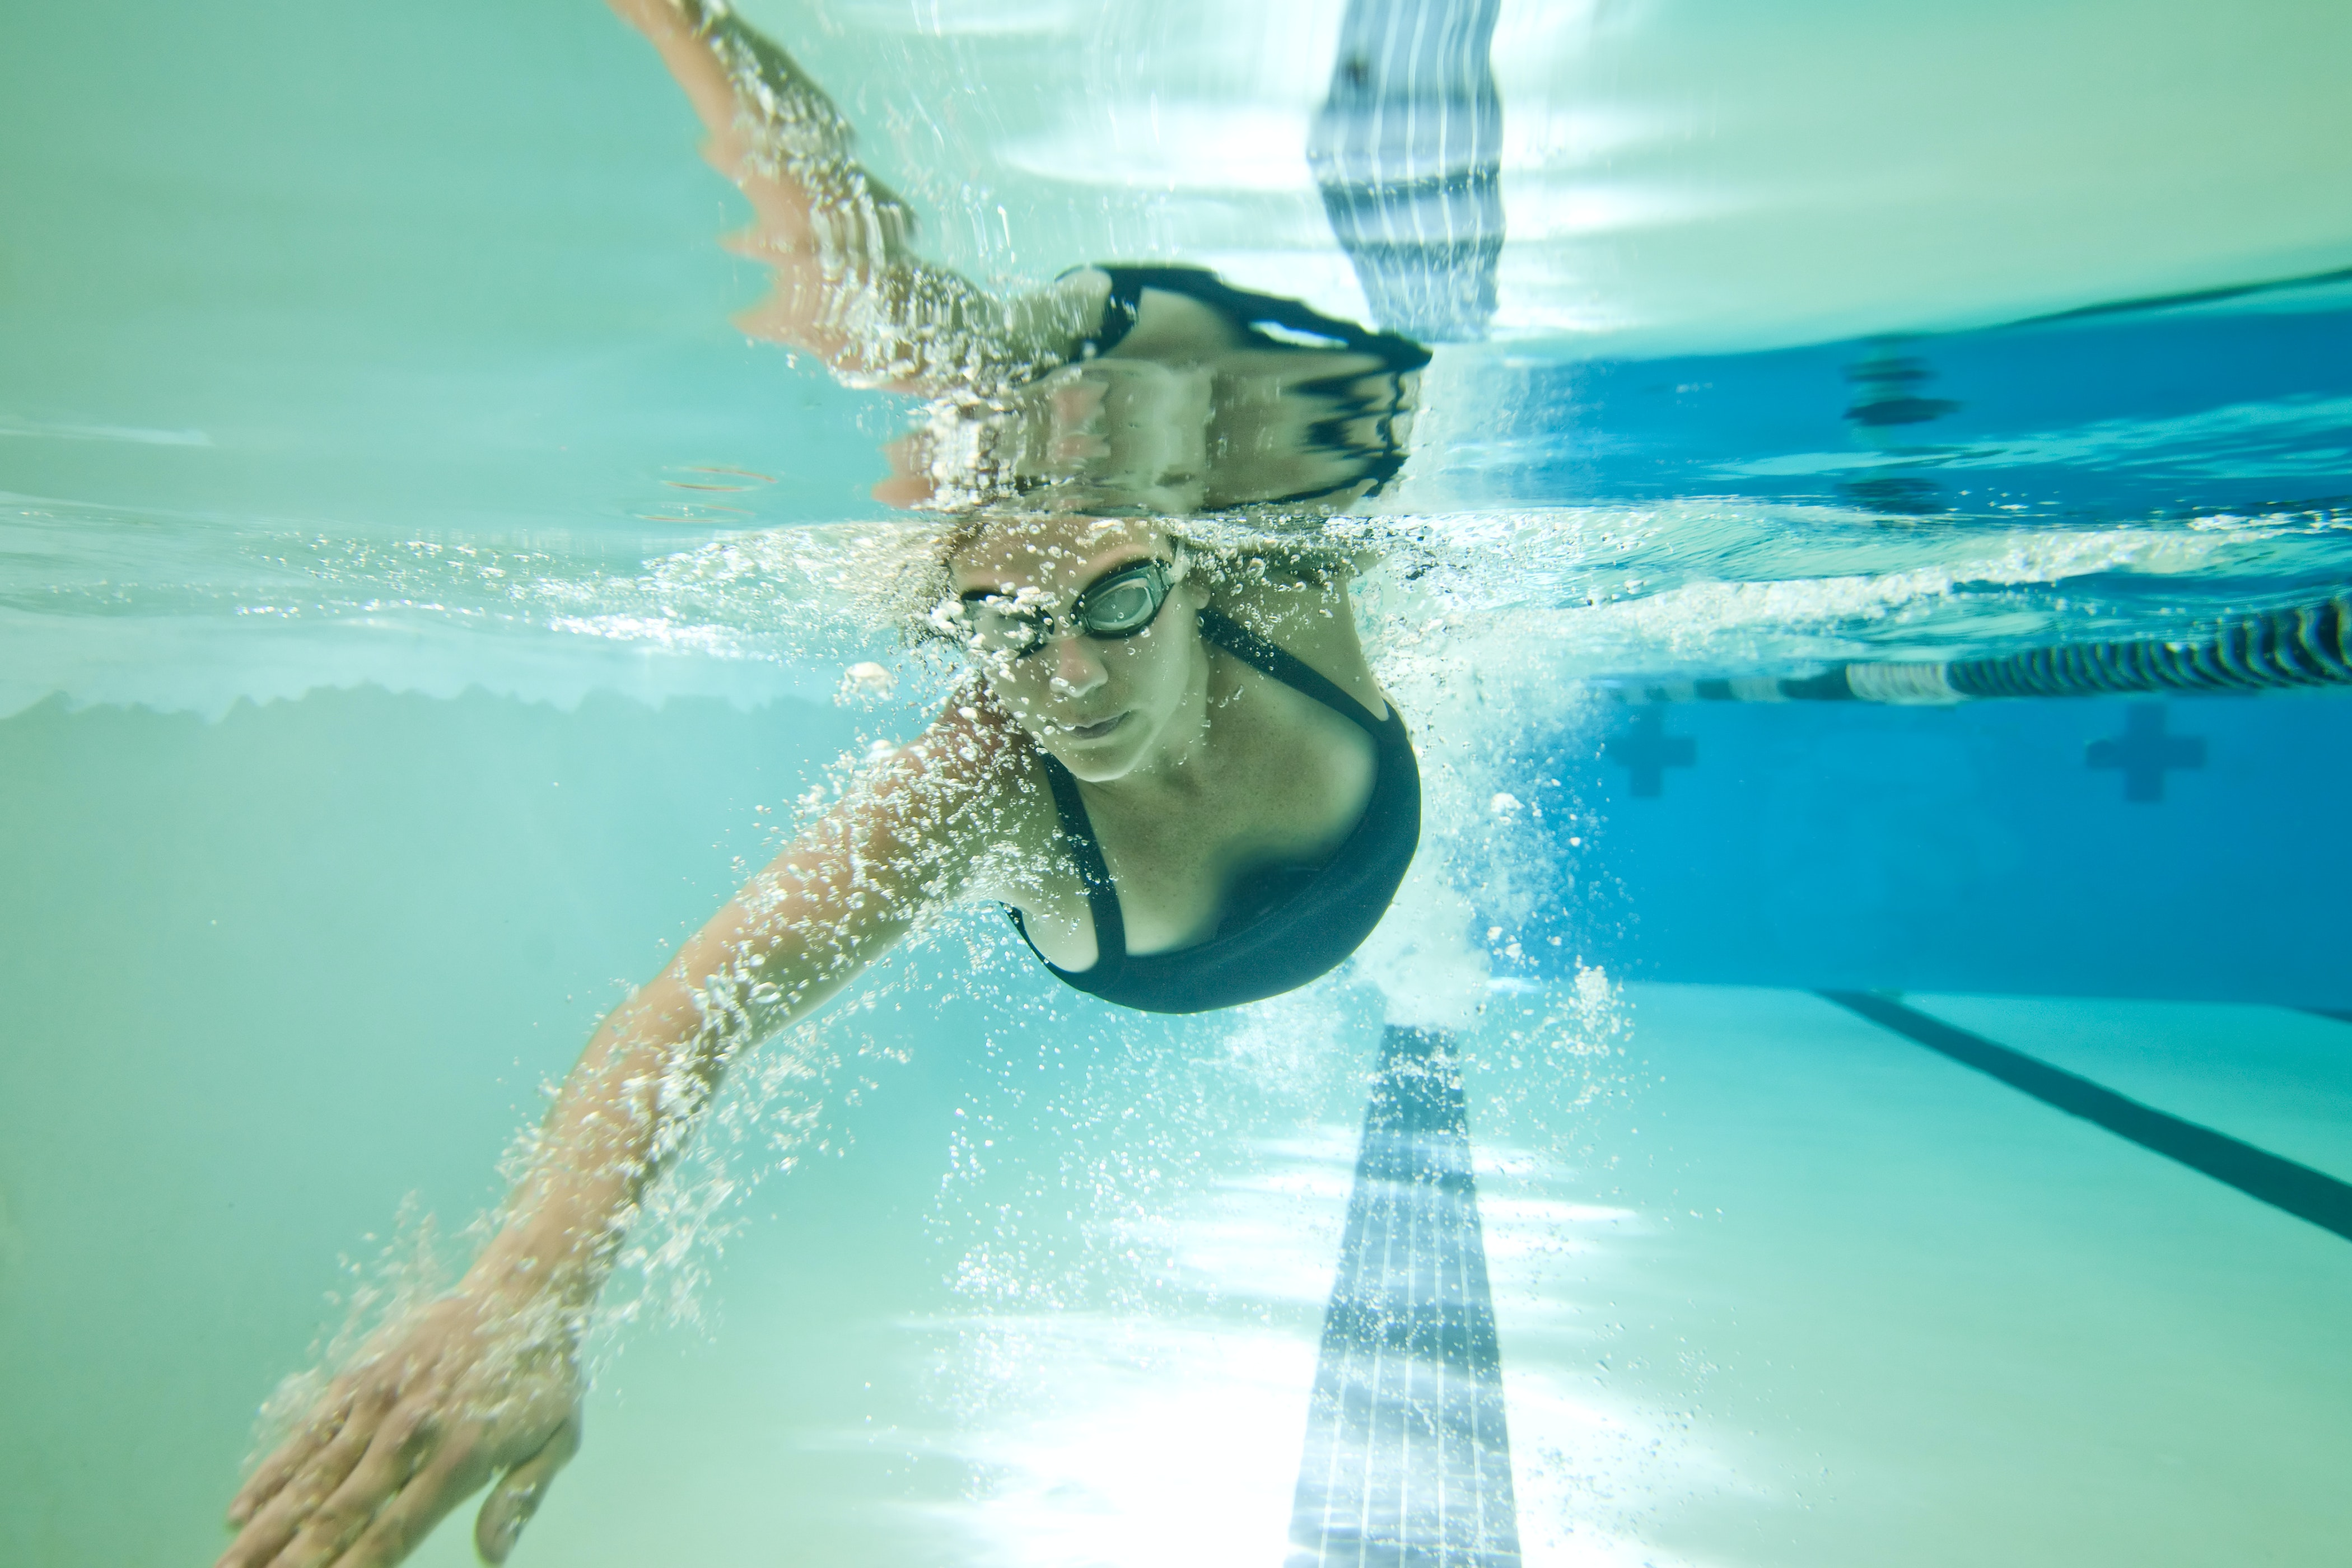 Exercises such as swimming can help strengthen the core. from shutterstock.com